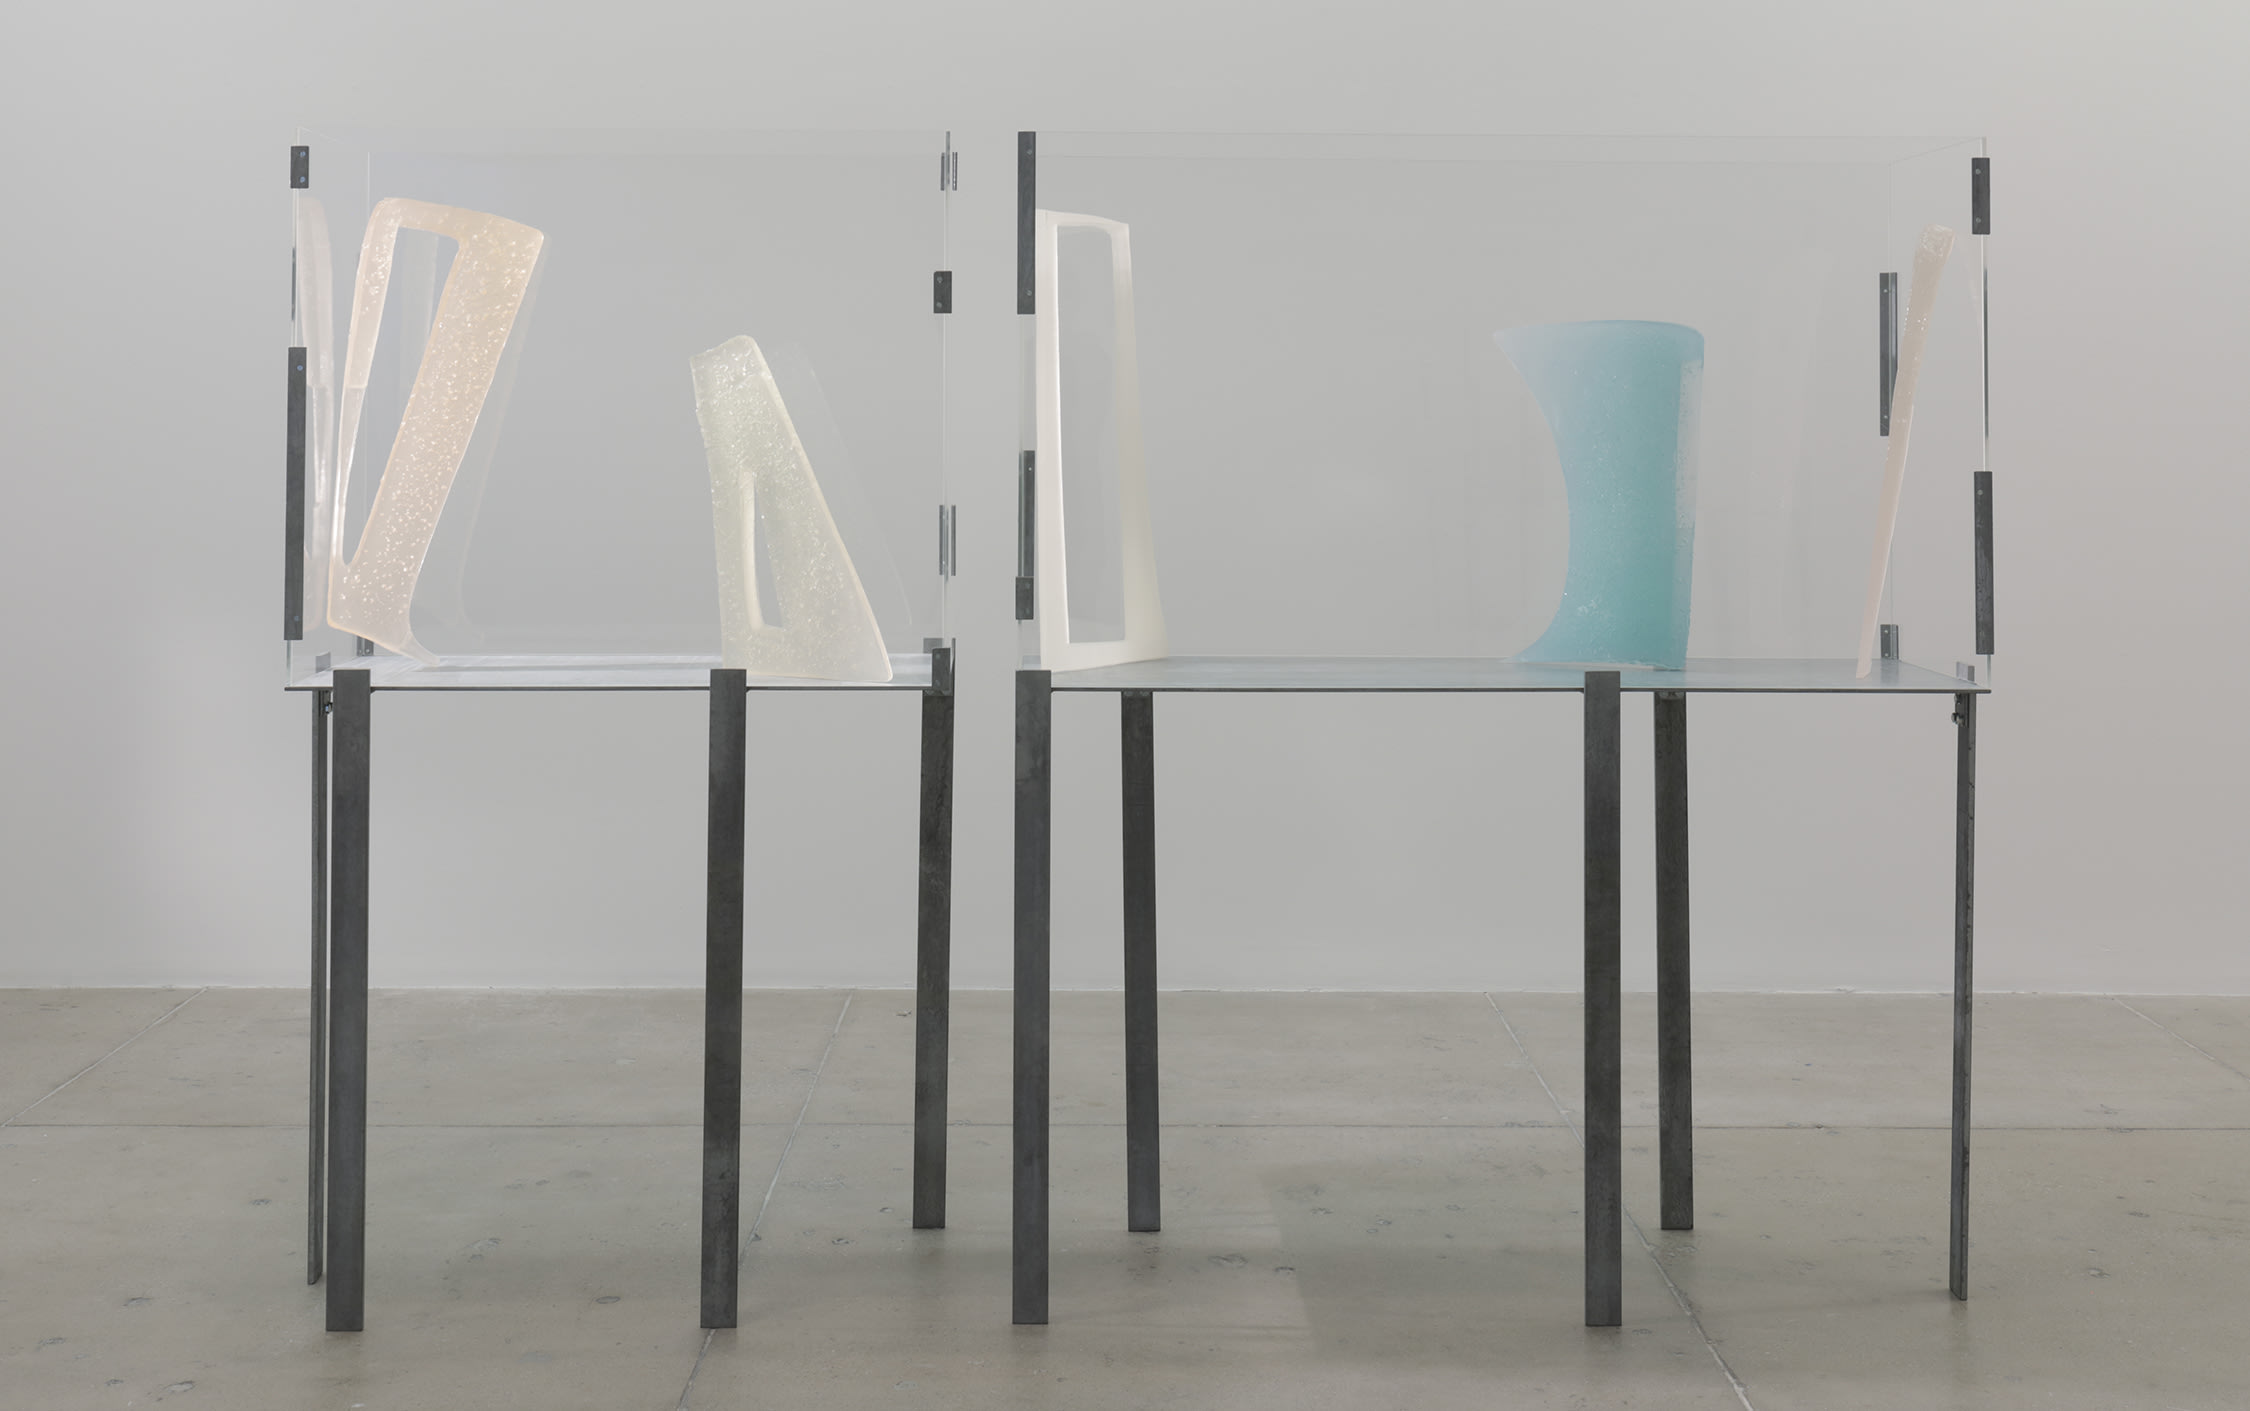 Pastel colored abstract sculptures stand encased in glass on a metal table.